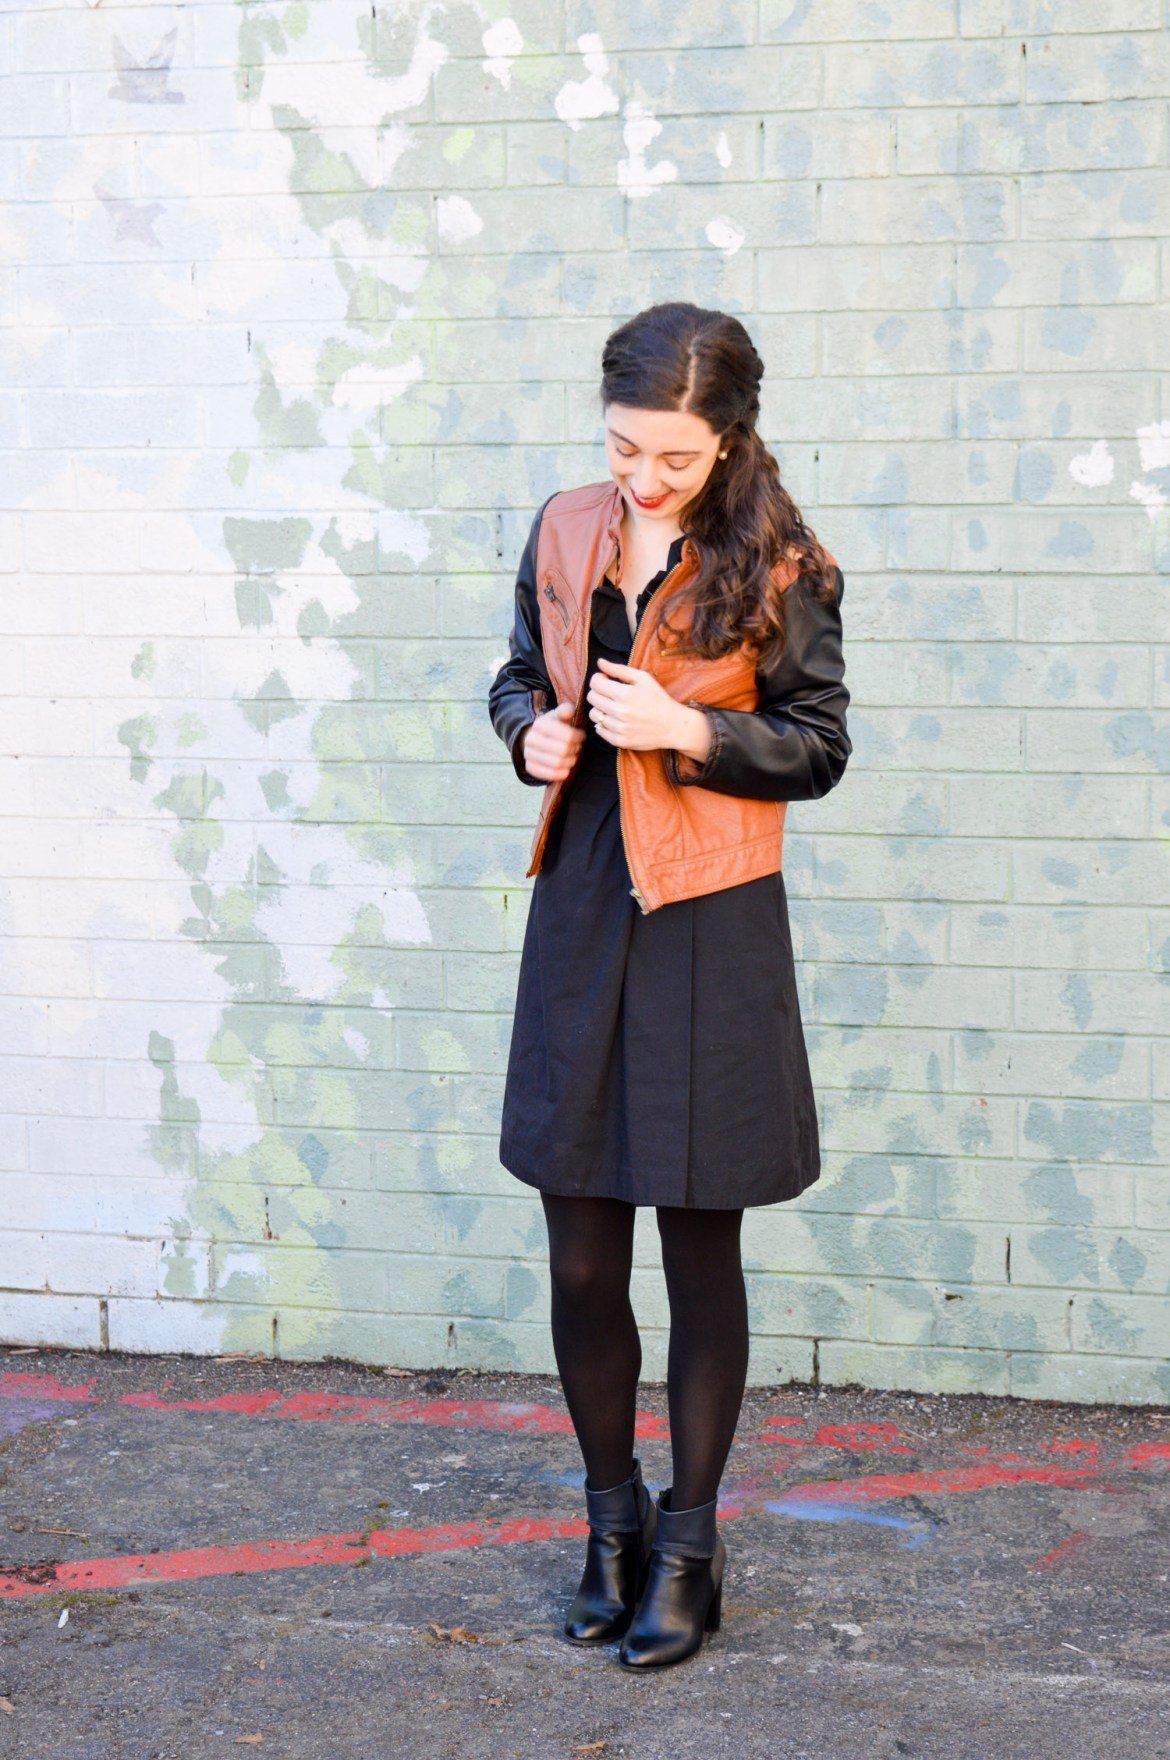 How to look chic and stay warm // Pair your little black dress with a jacket and booties